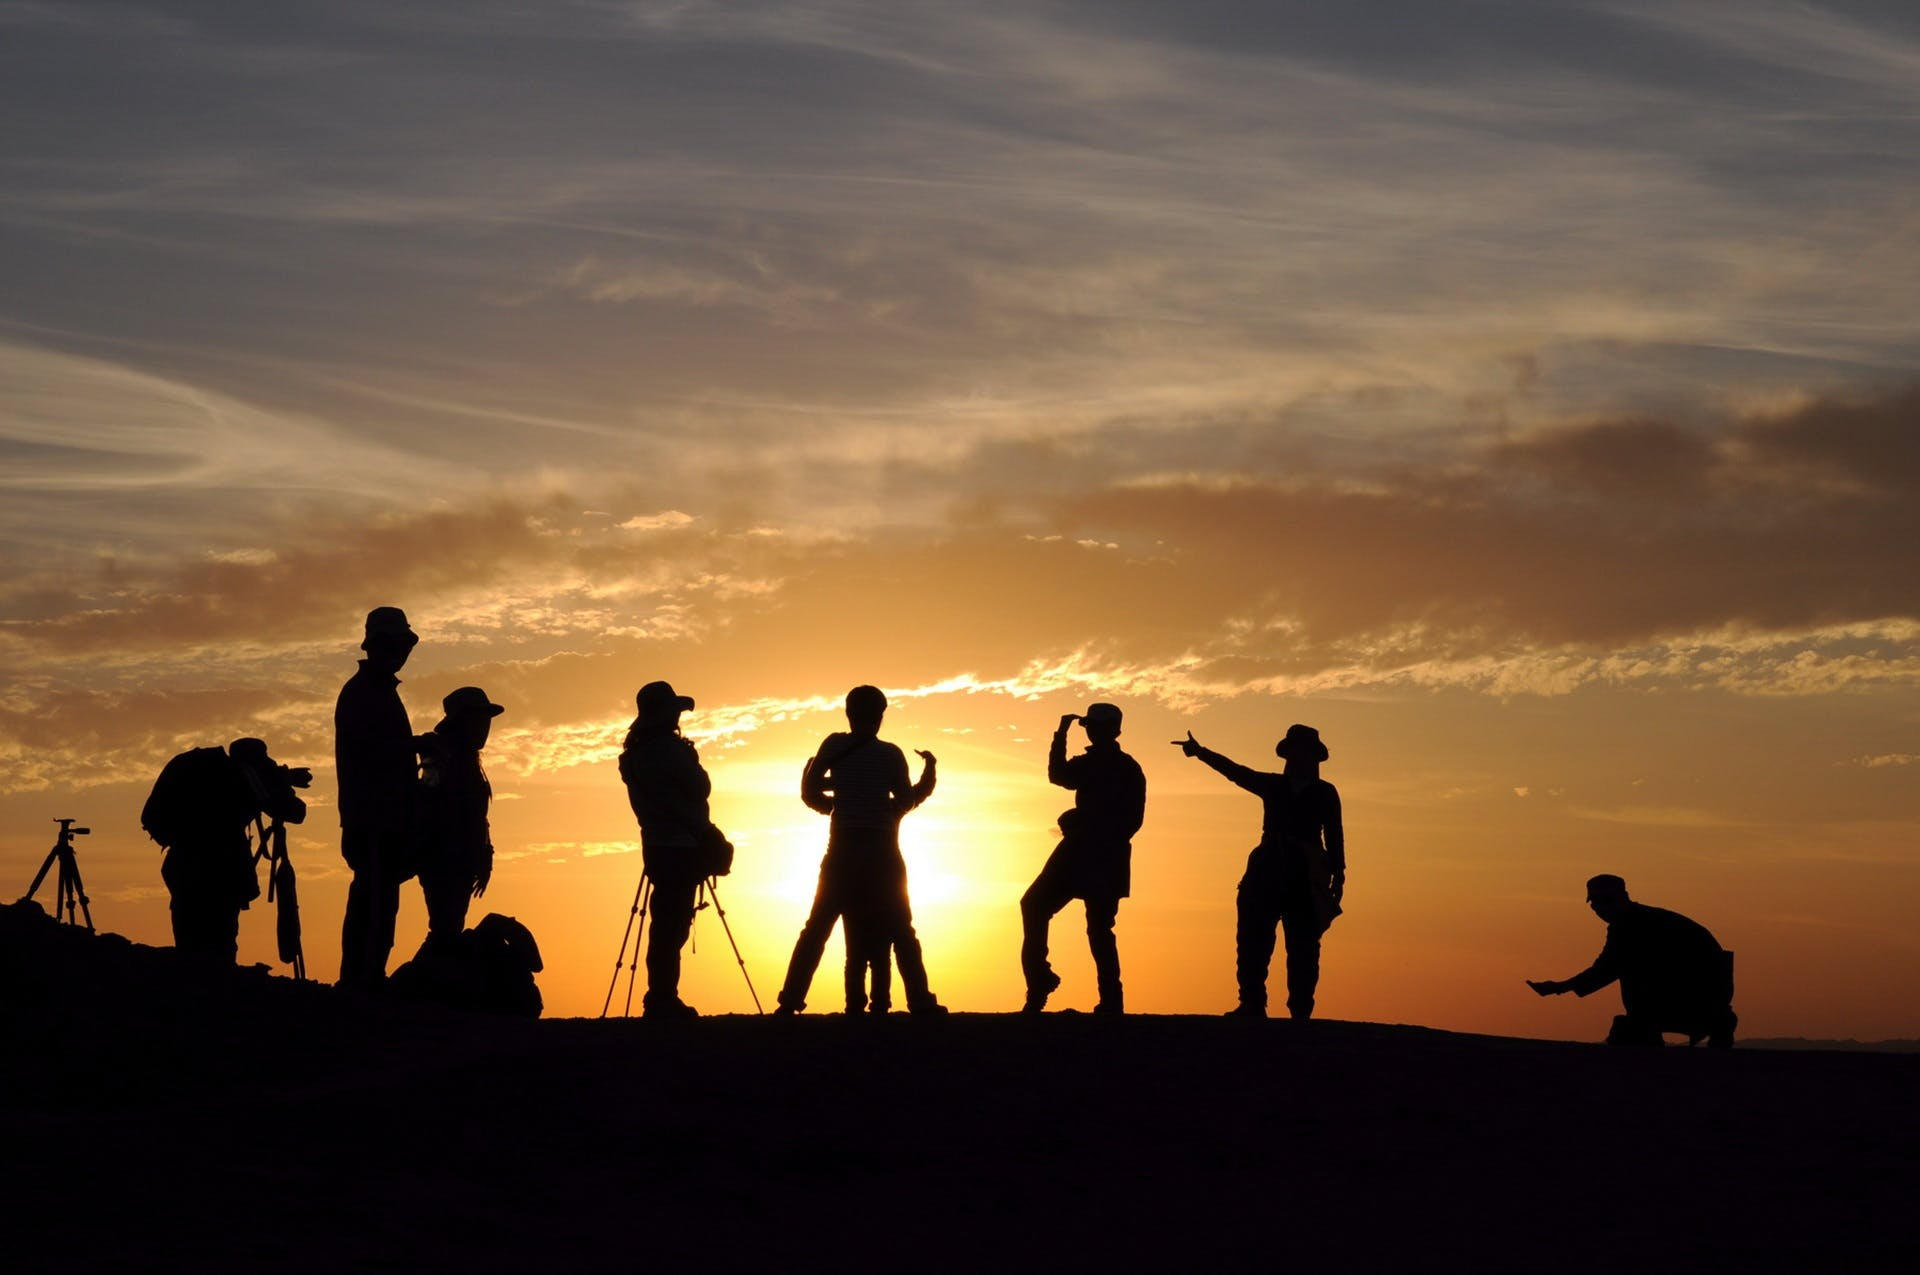 Silhouette Photography of Group of People Standing on Mountain